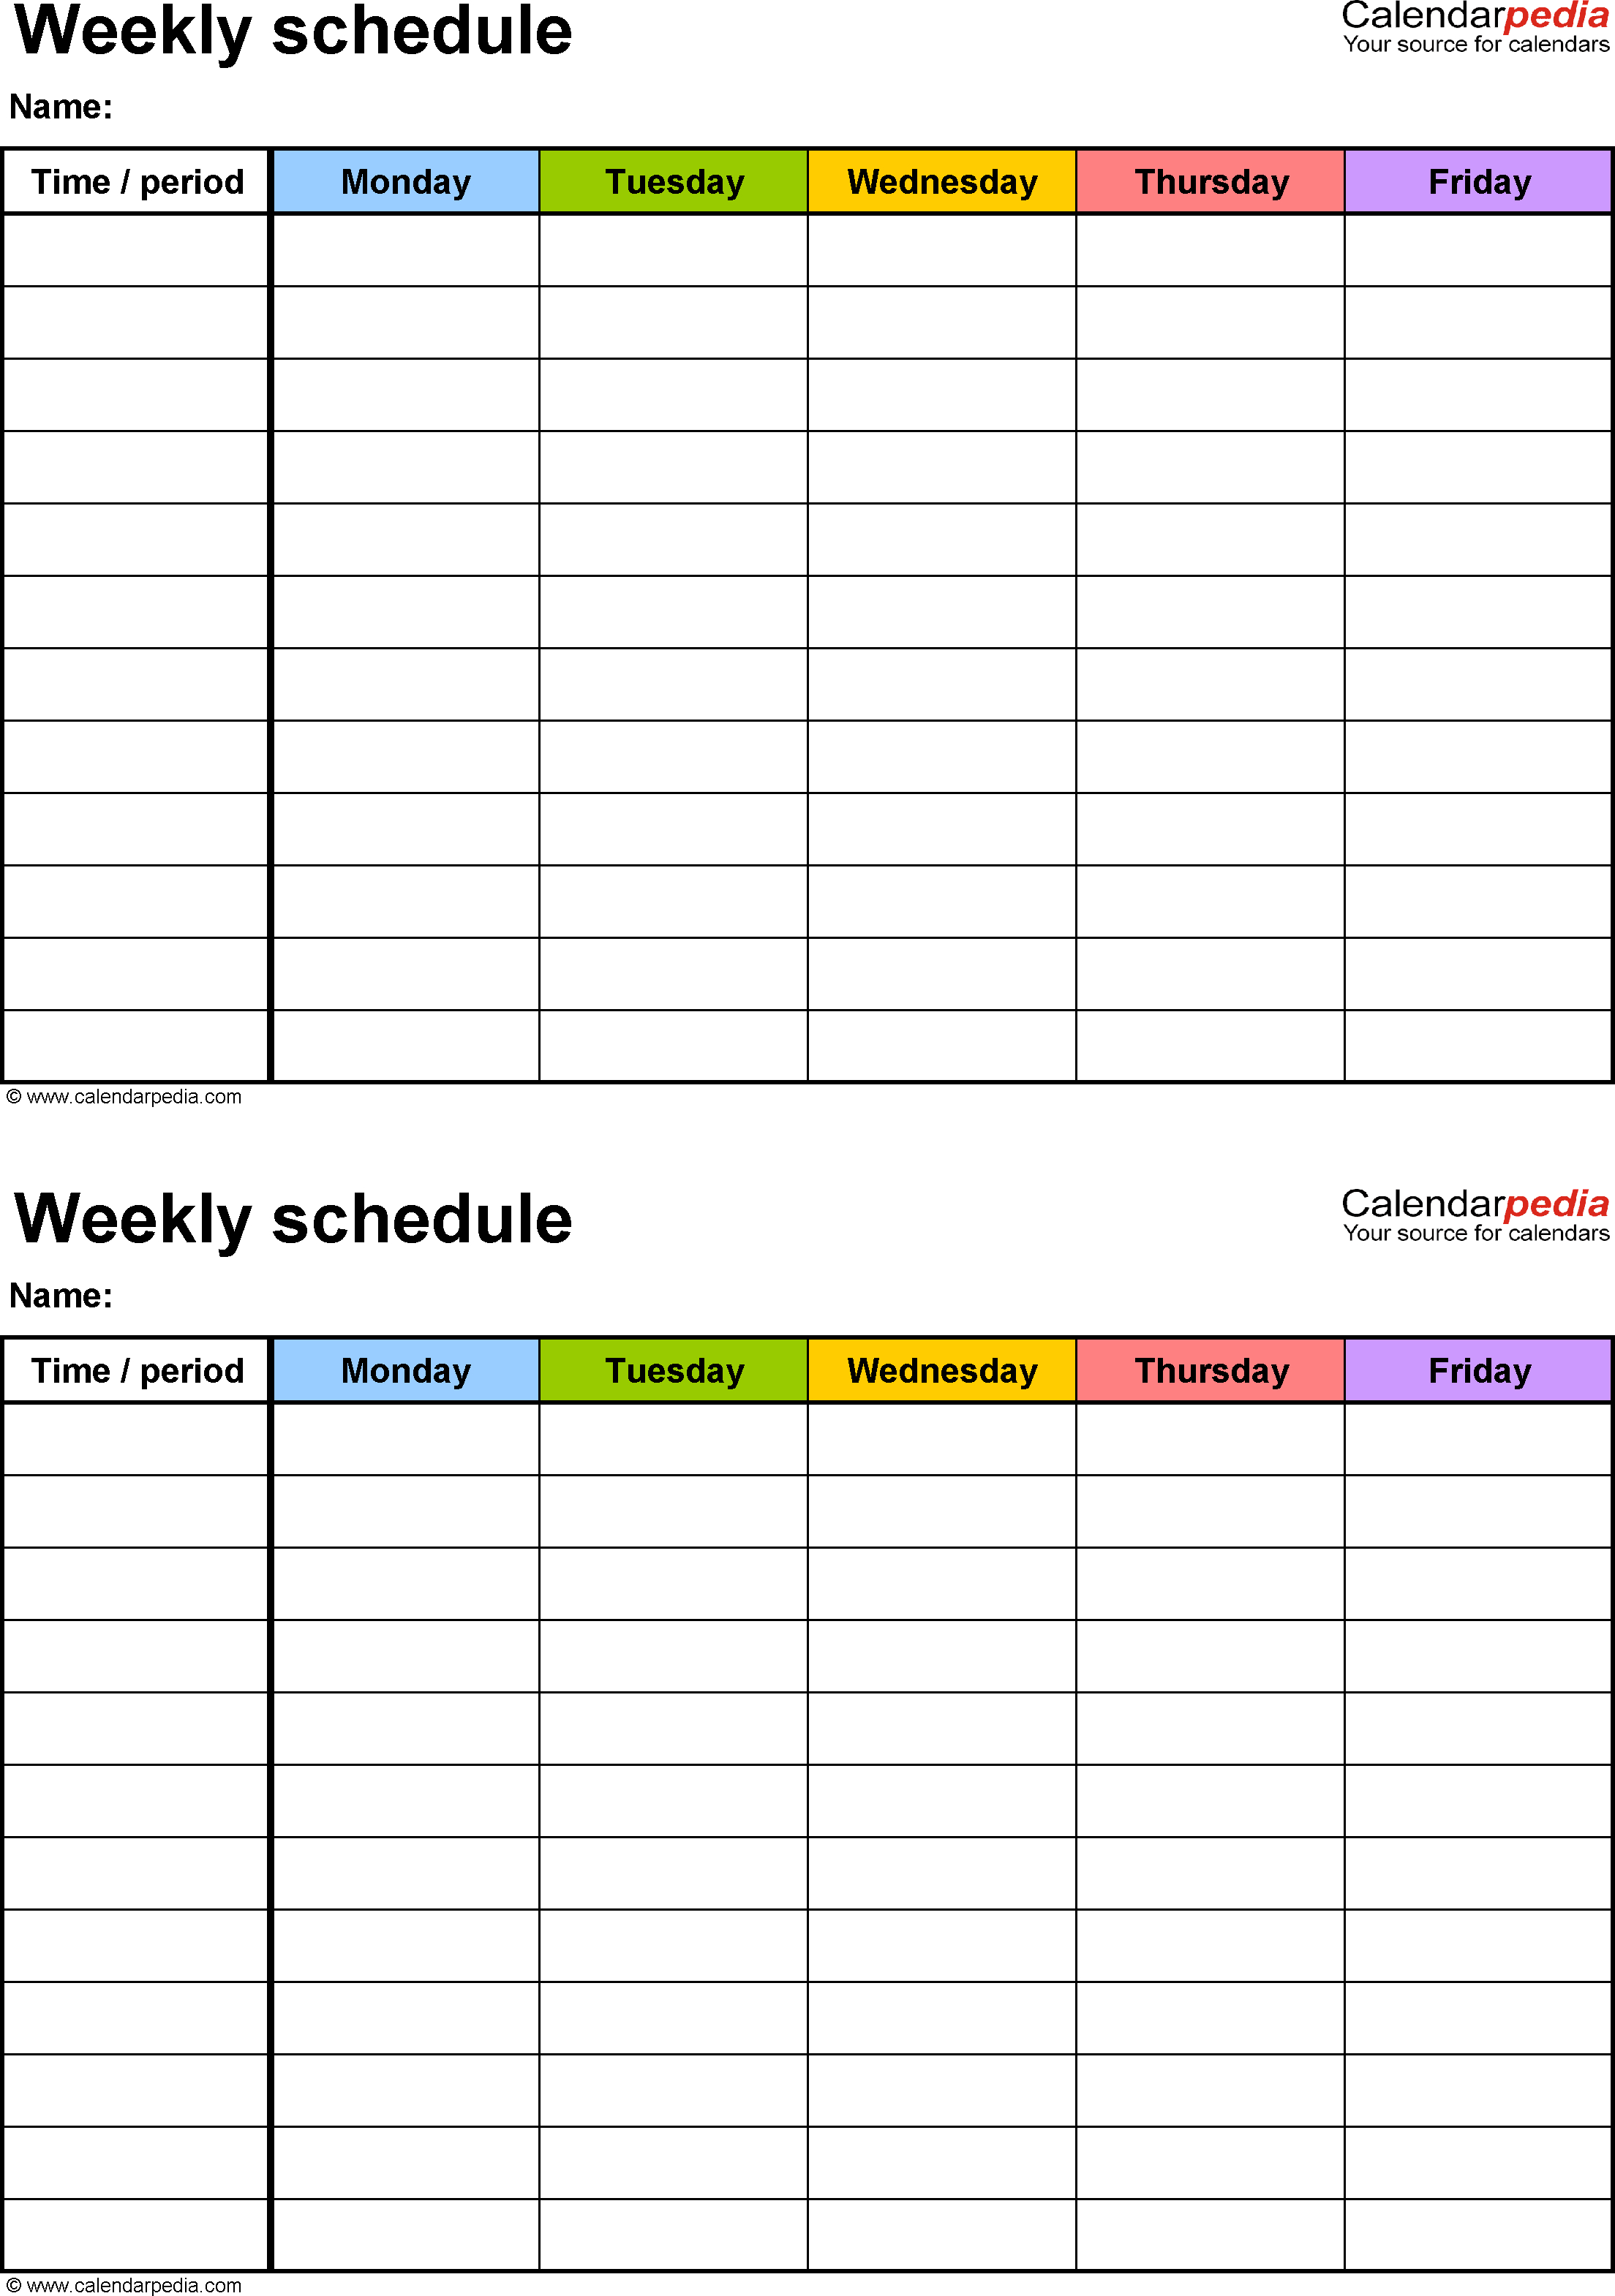 Free Weekly Schedule Templates For Word - 18 Templates for Free Template For Weekly Schedule